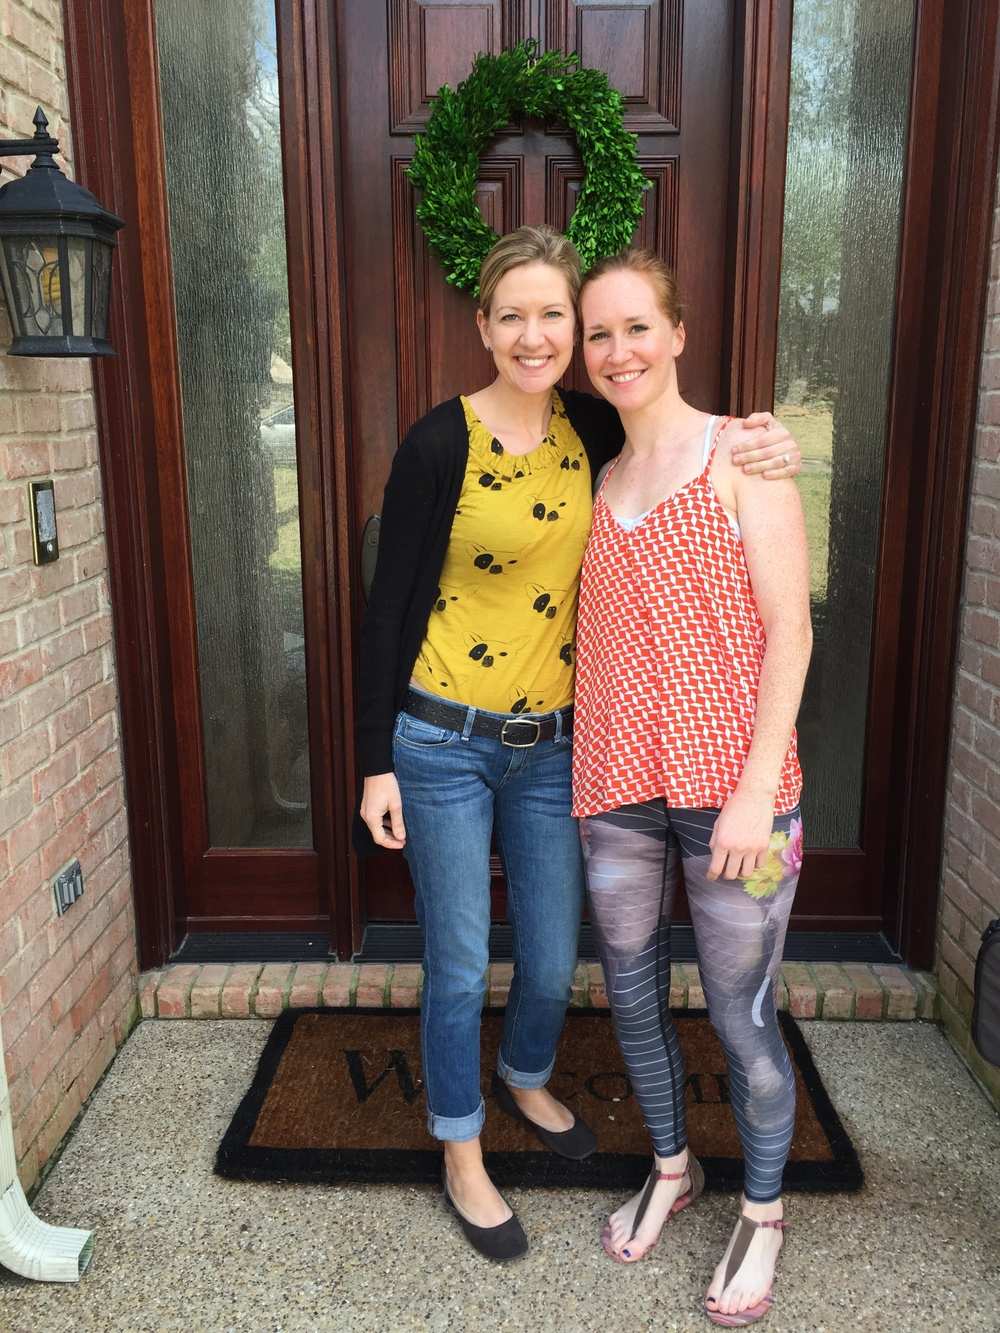 Me and Angie in Dallas, March 2015. After a great lesson - and I'm still smiling (and so is she!). Ignore the pants - my mom says they make me look like I have Gangrene. She doubts my yoga-chic fashion choices all of the time.